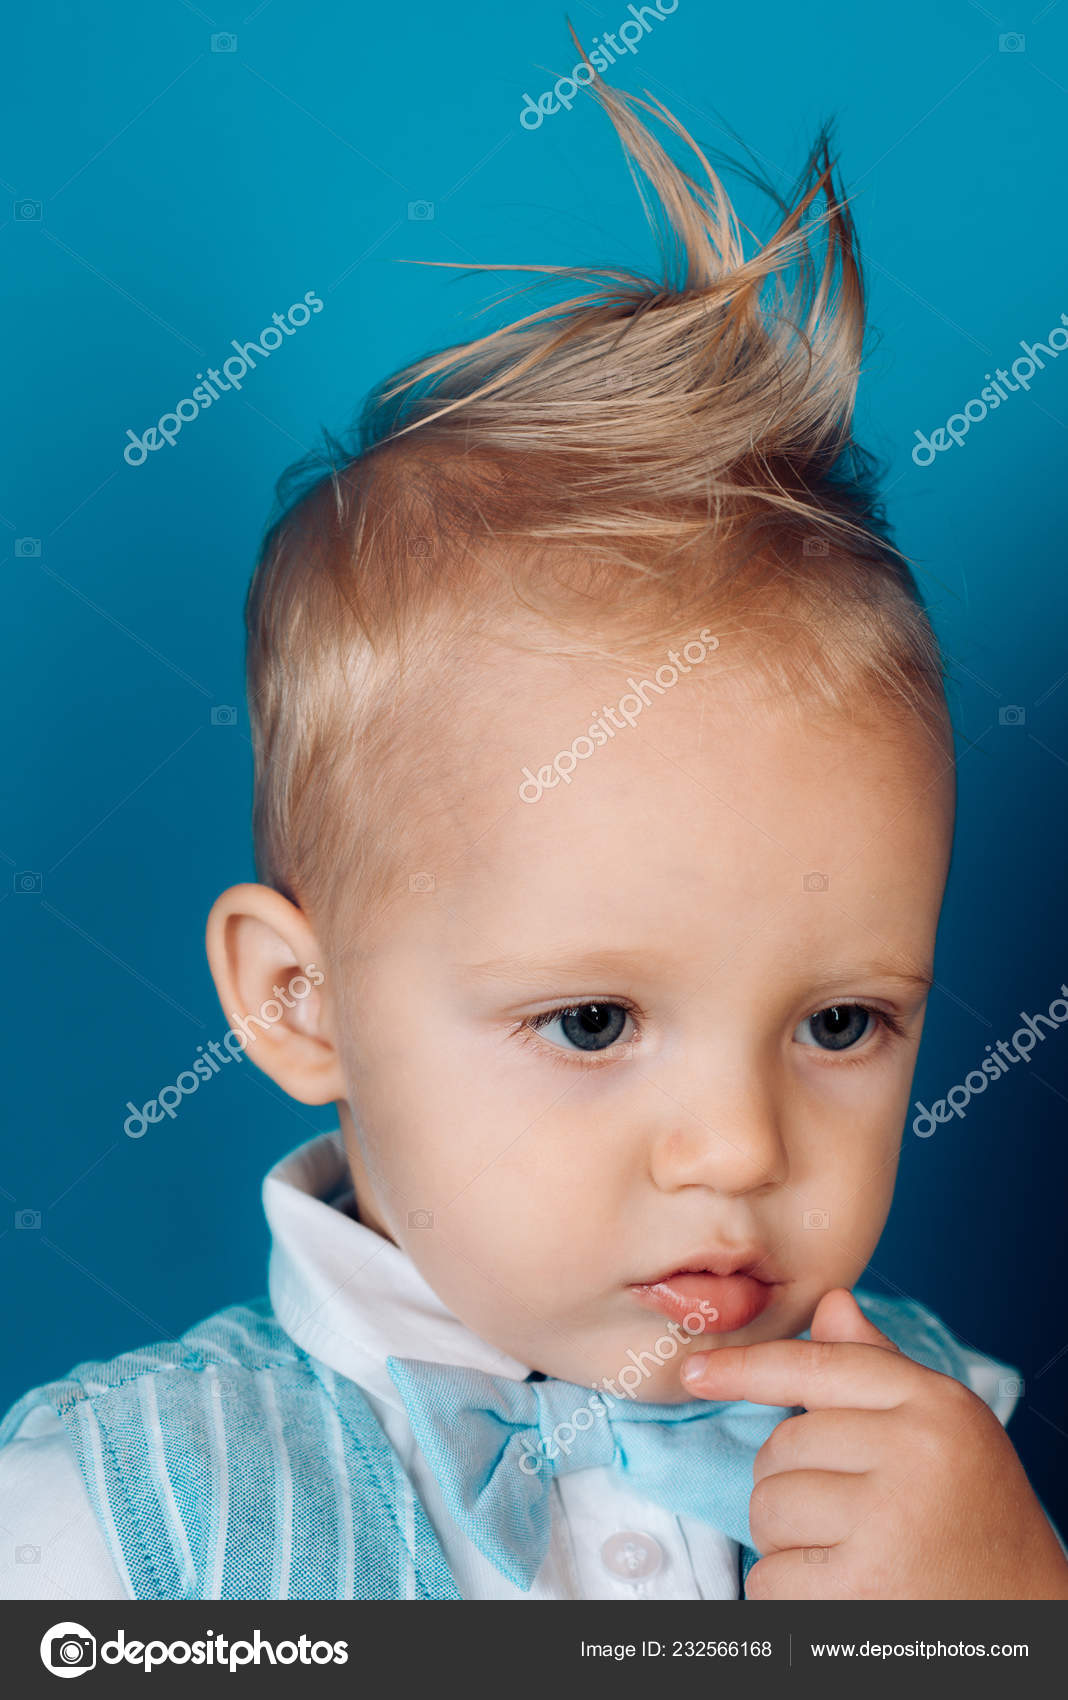 Having A Modern Haircut Boy Child With Stylish Blond Hair Small